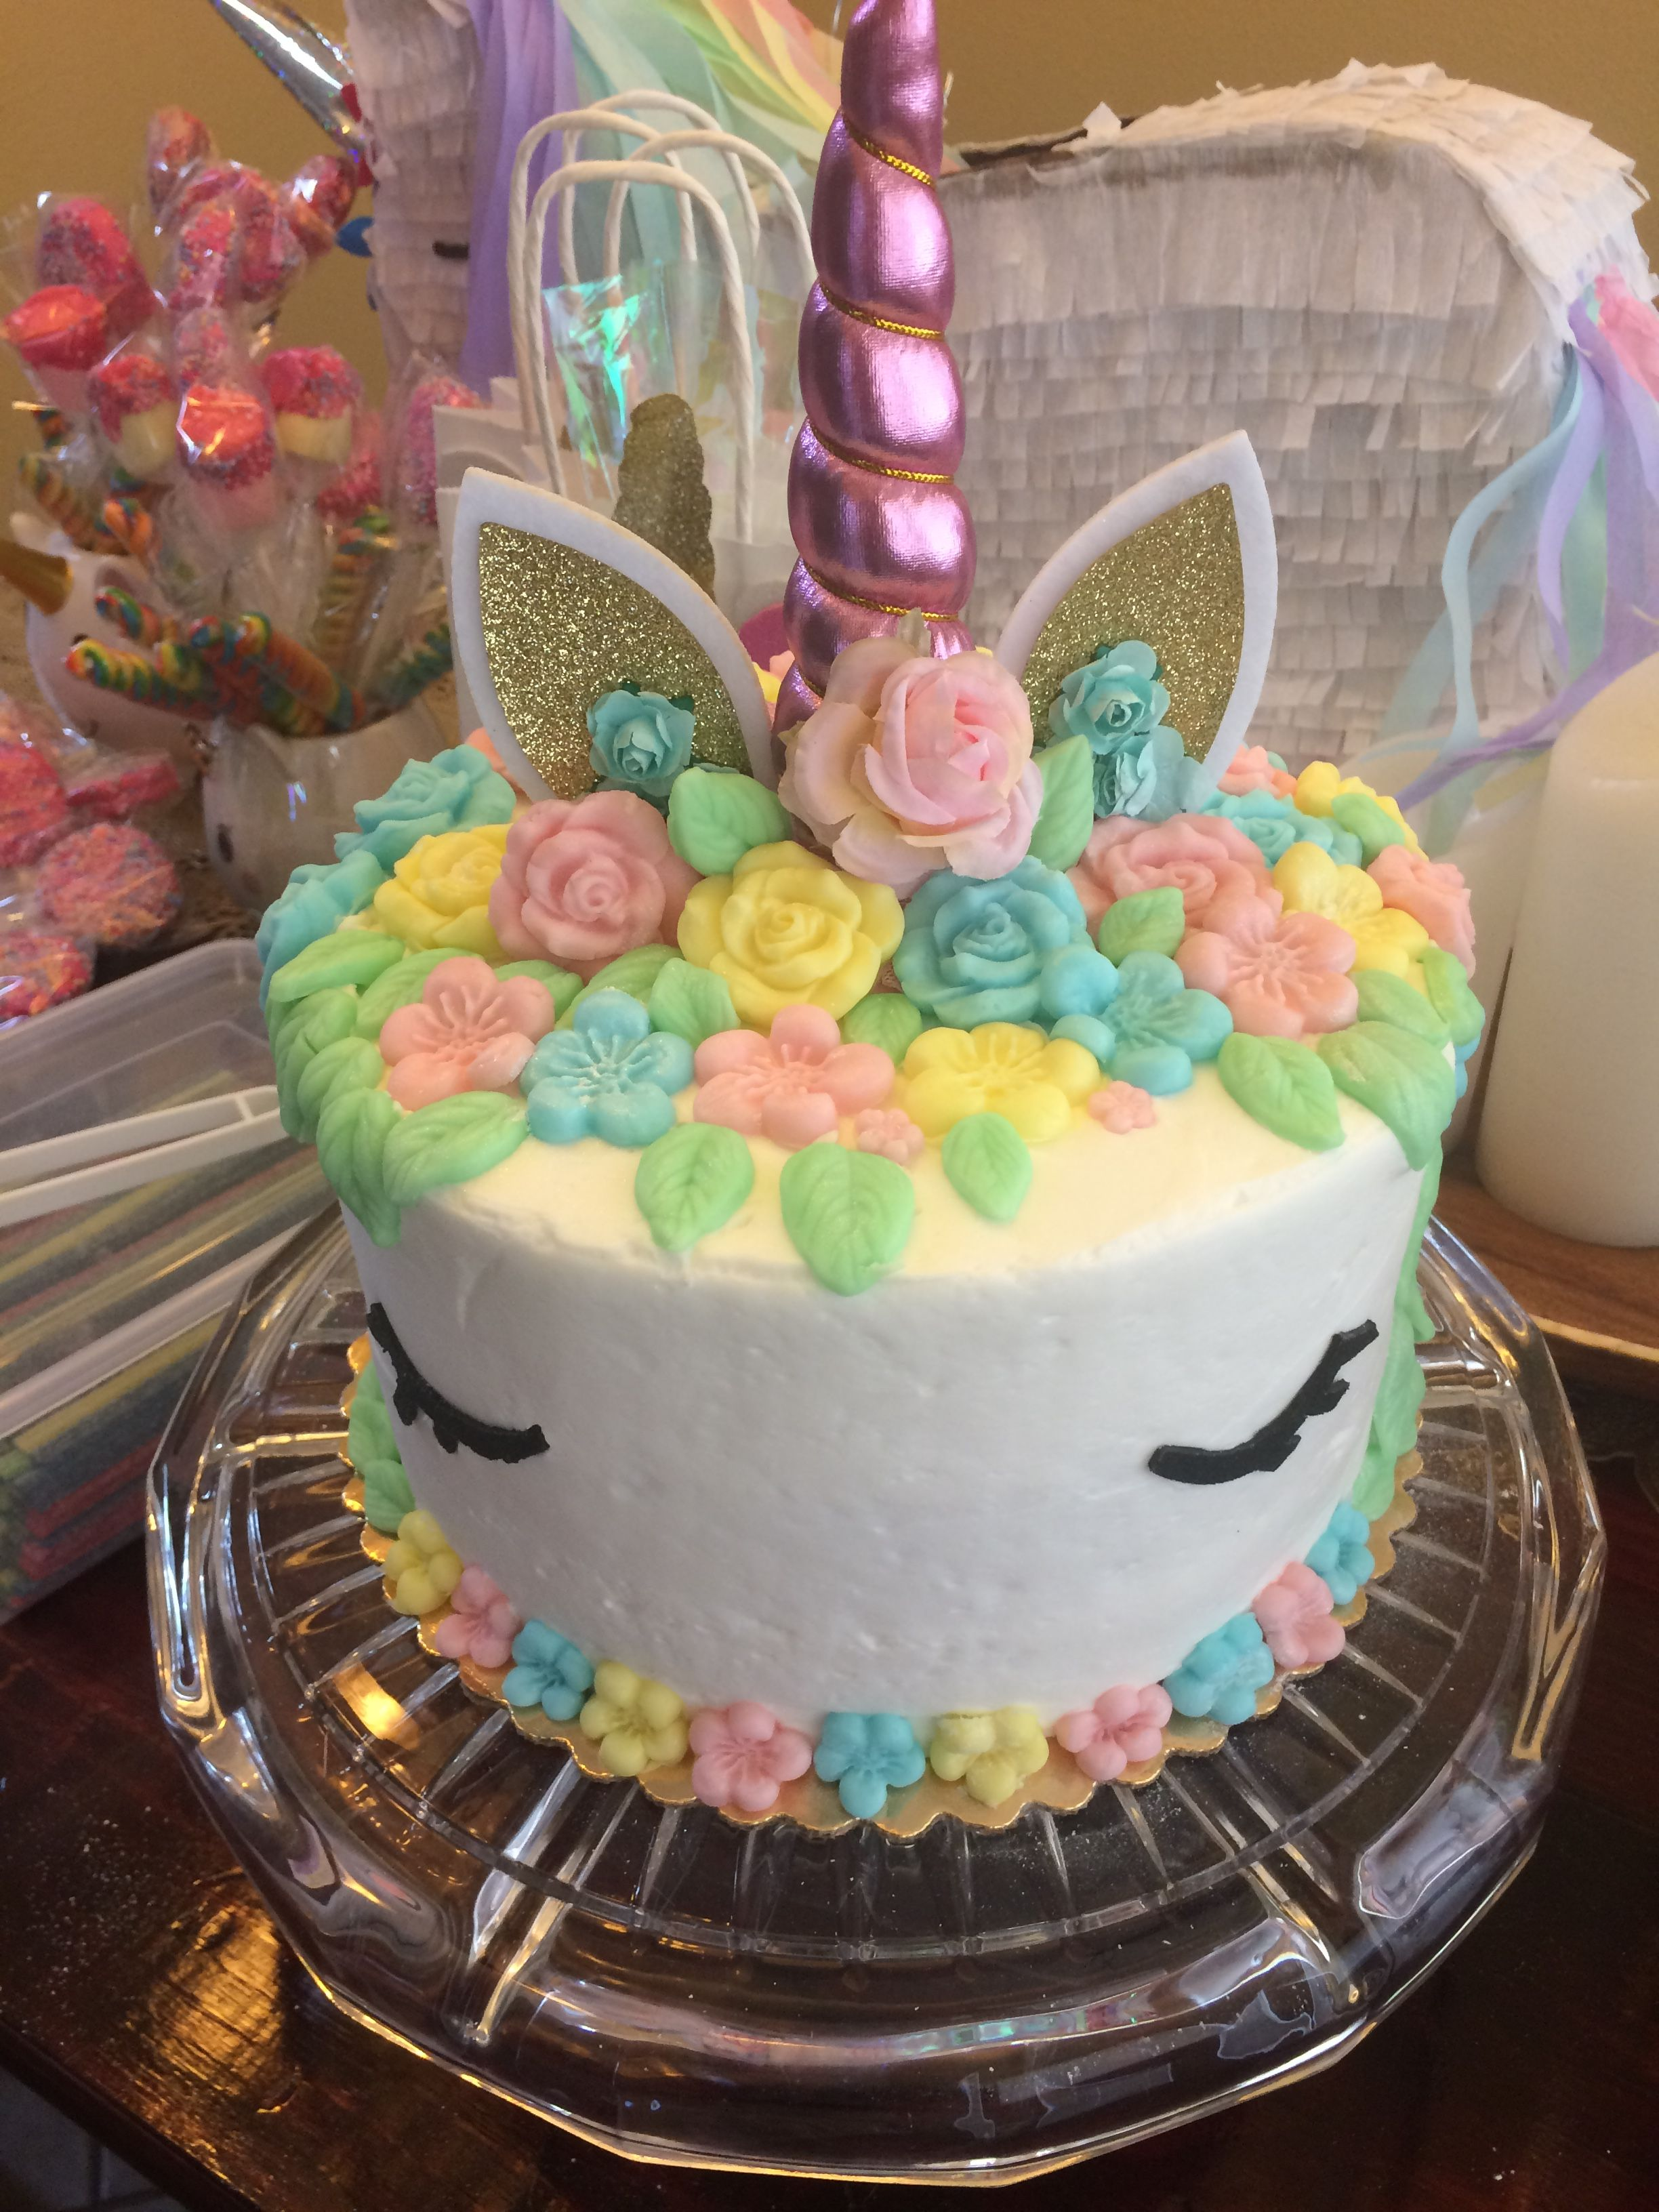 Excellent Easy Unicorn Cake Purchased Cake From Vons And Asked Them To Just Funny Birthday Cards Online Fluifree Goldxyz